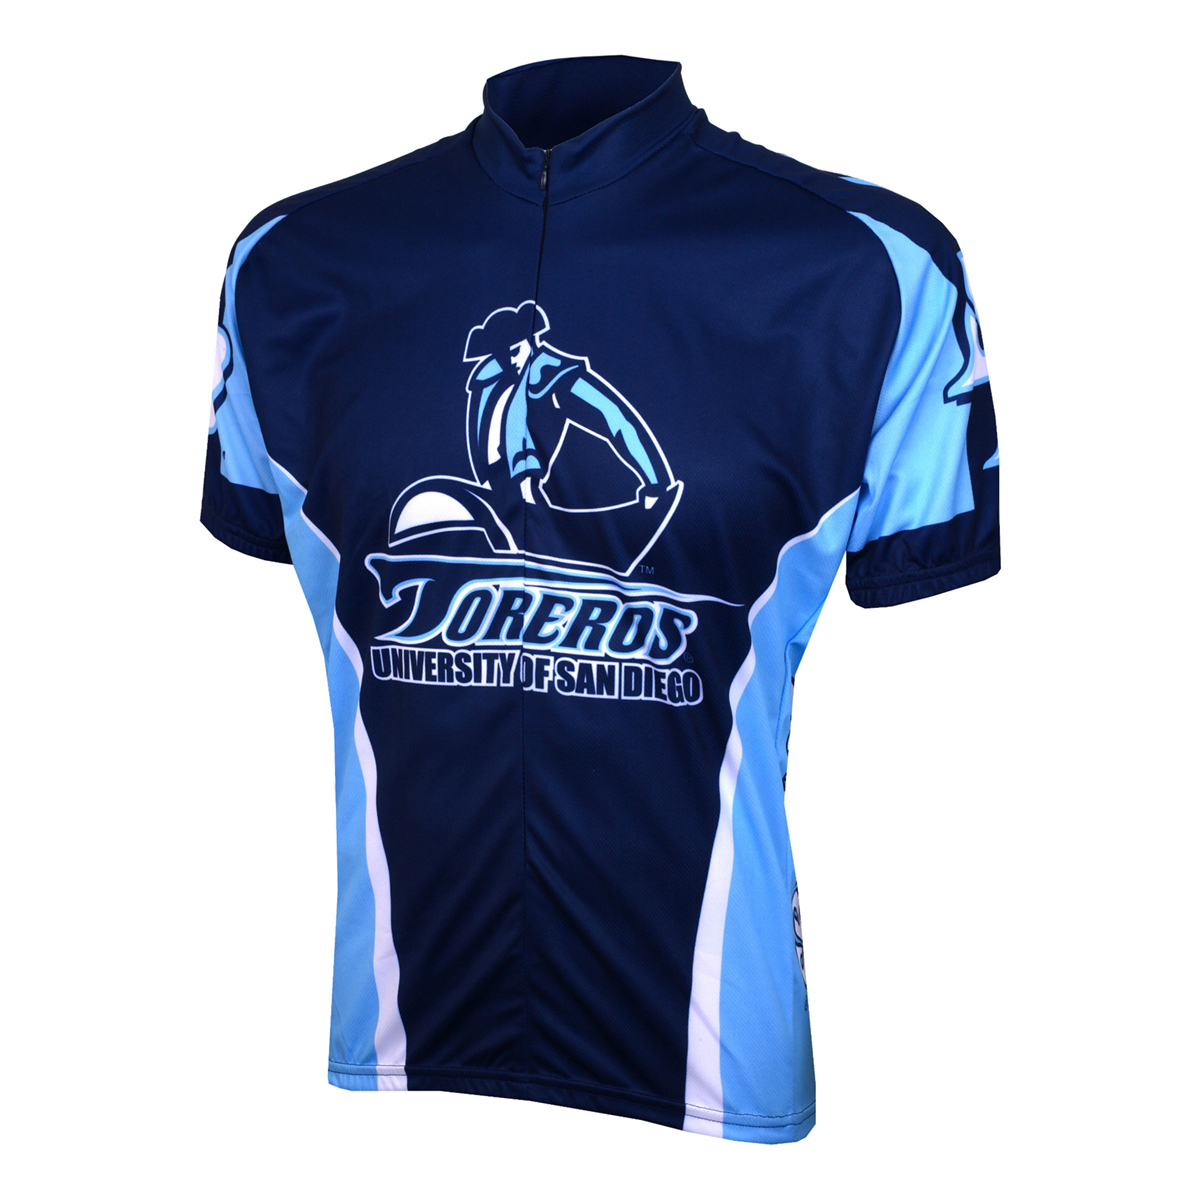 Adrenaline Promotions University of San Diego Toreros Cycling Jersey